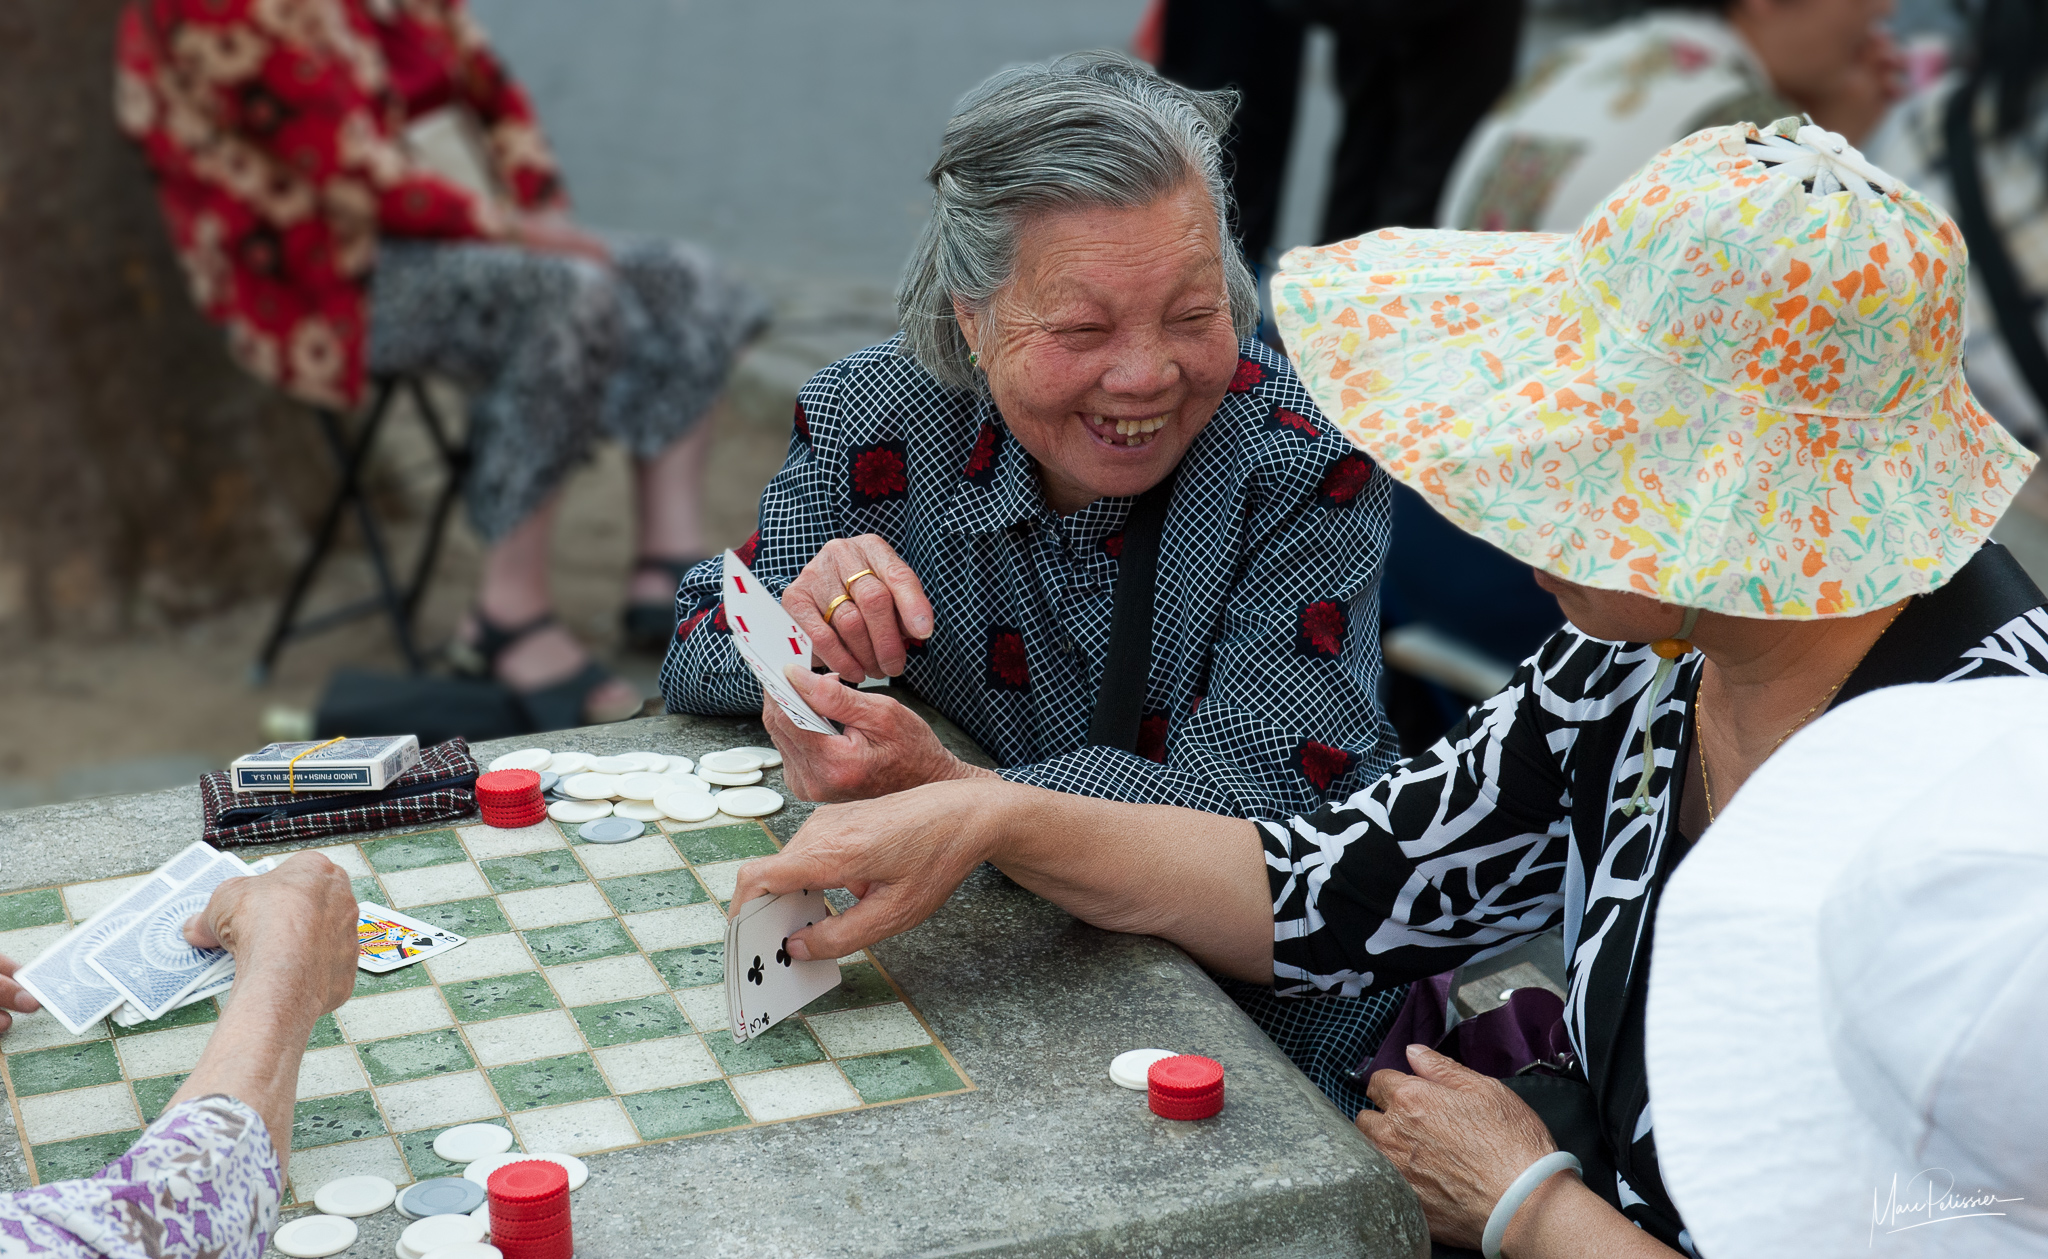 Sunday card play in Colombus park, USA